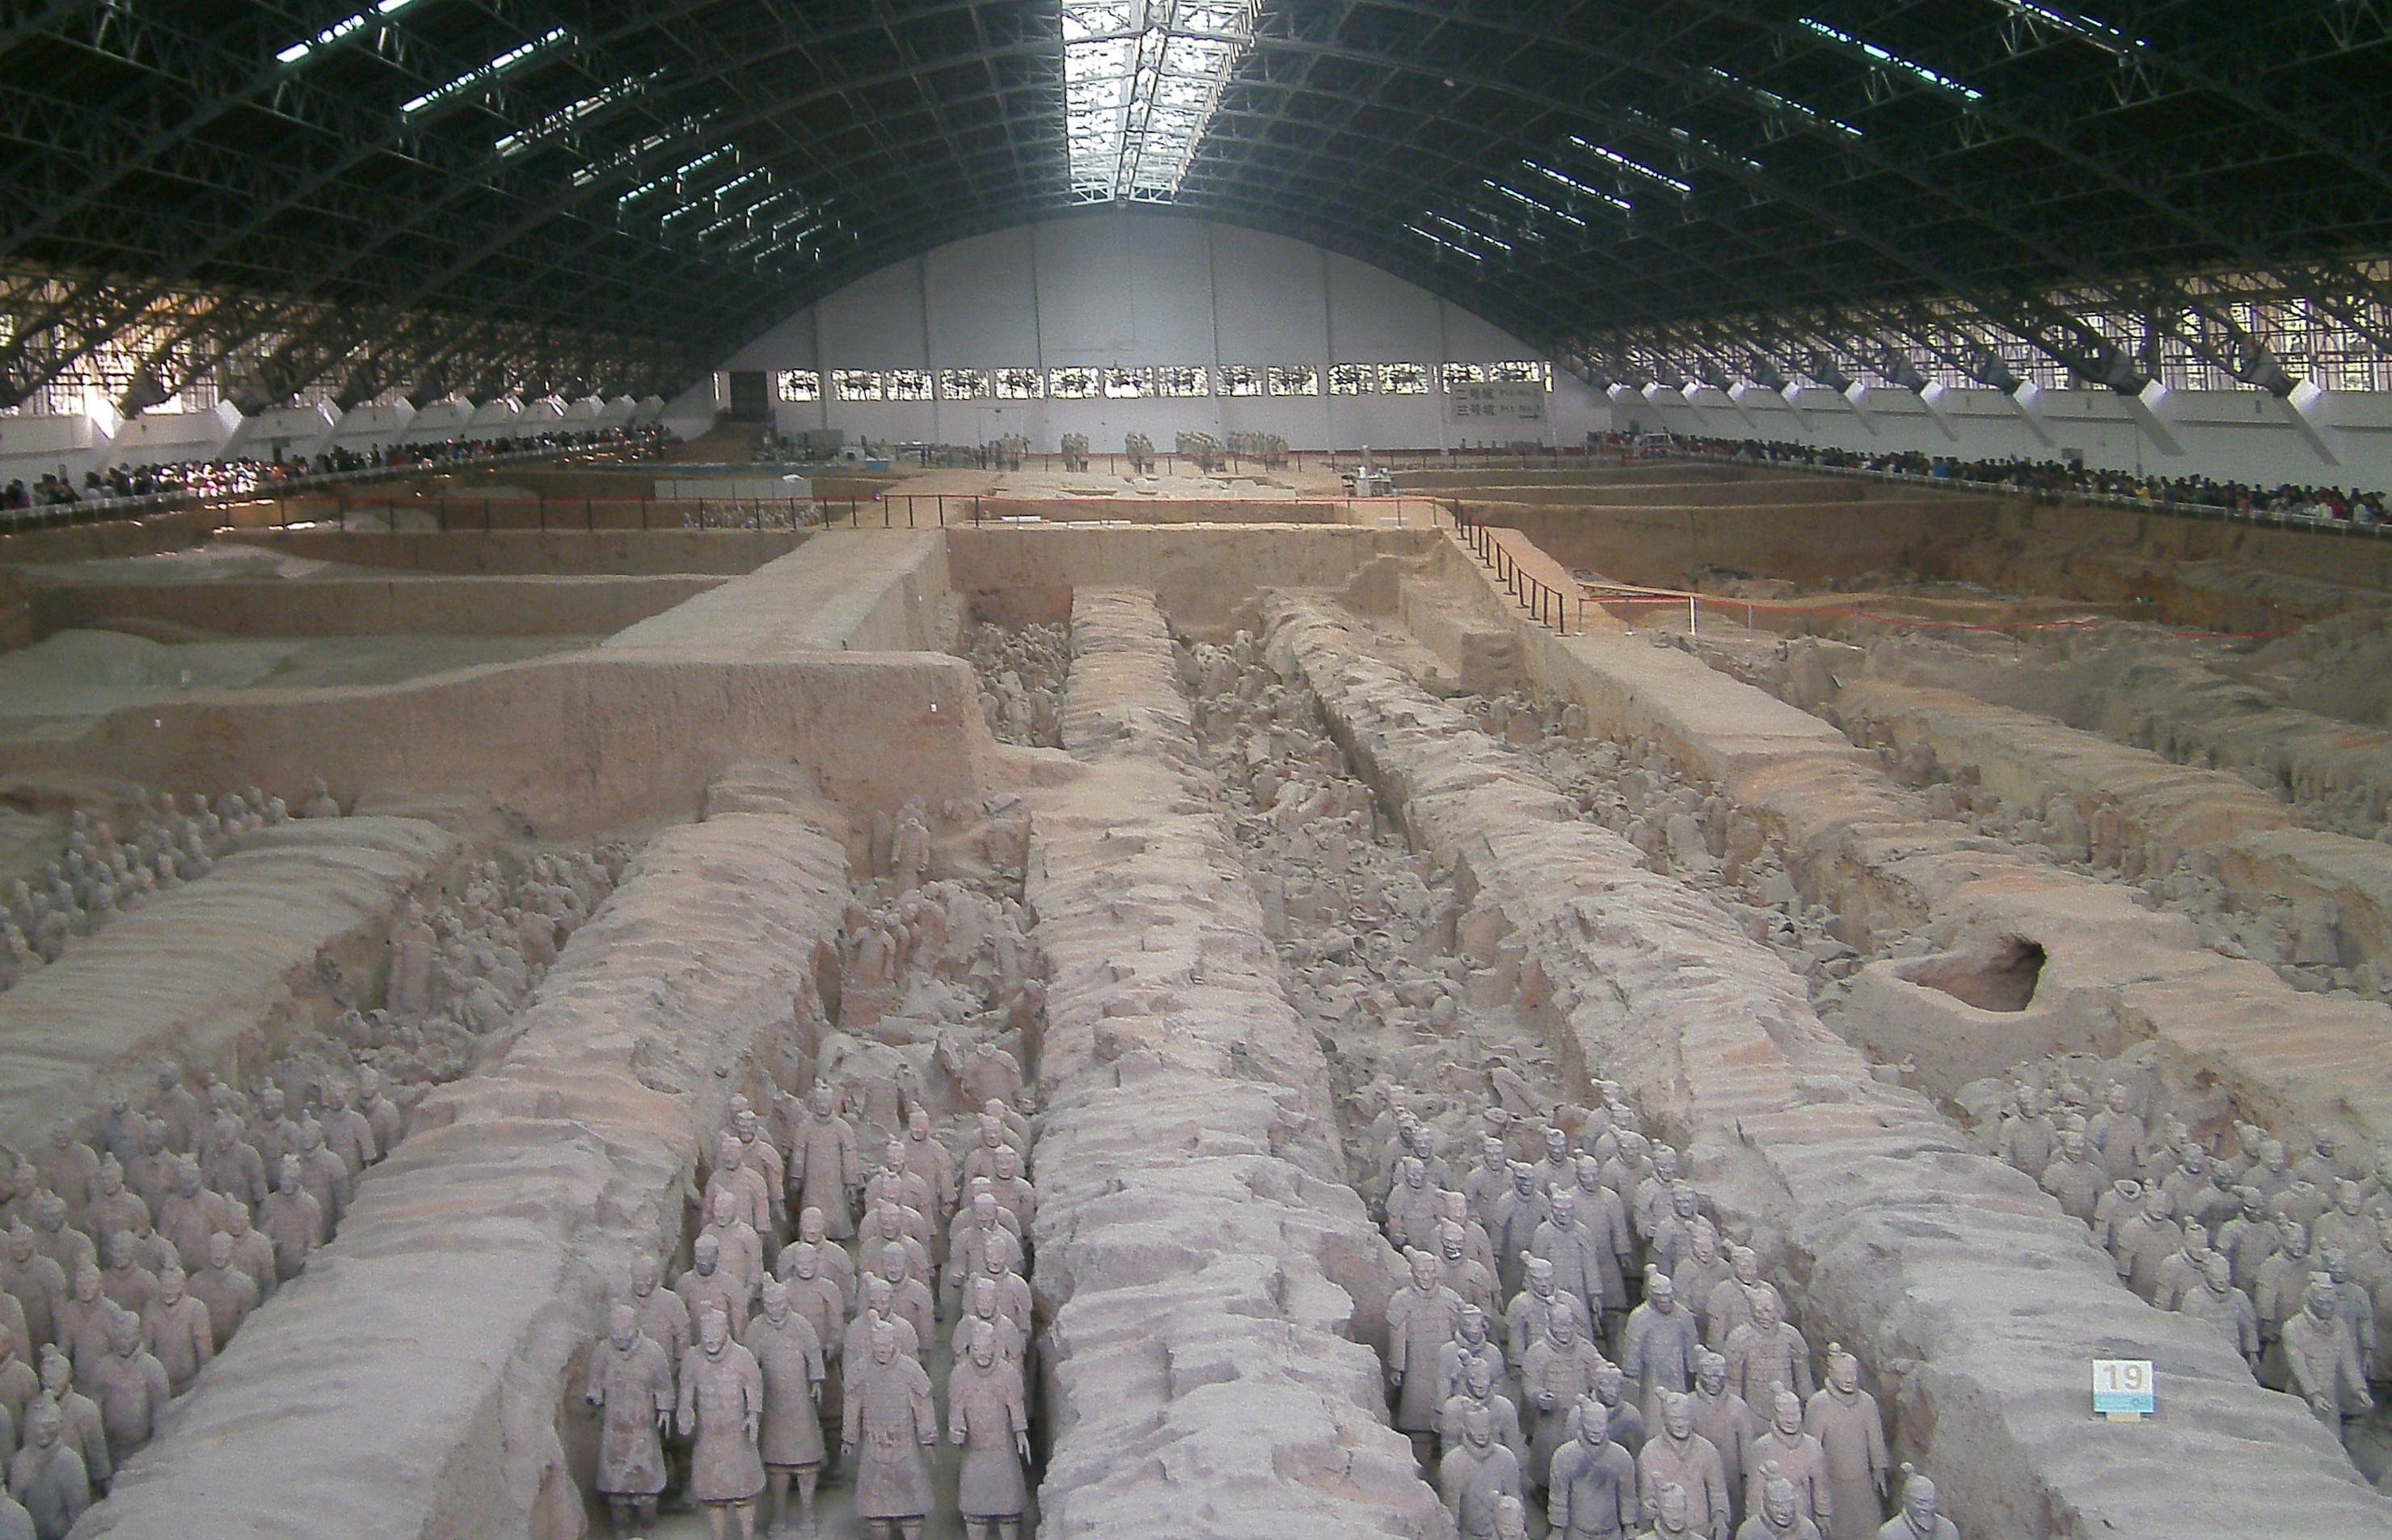 Tour of China: Terracotta Army in Xi'an